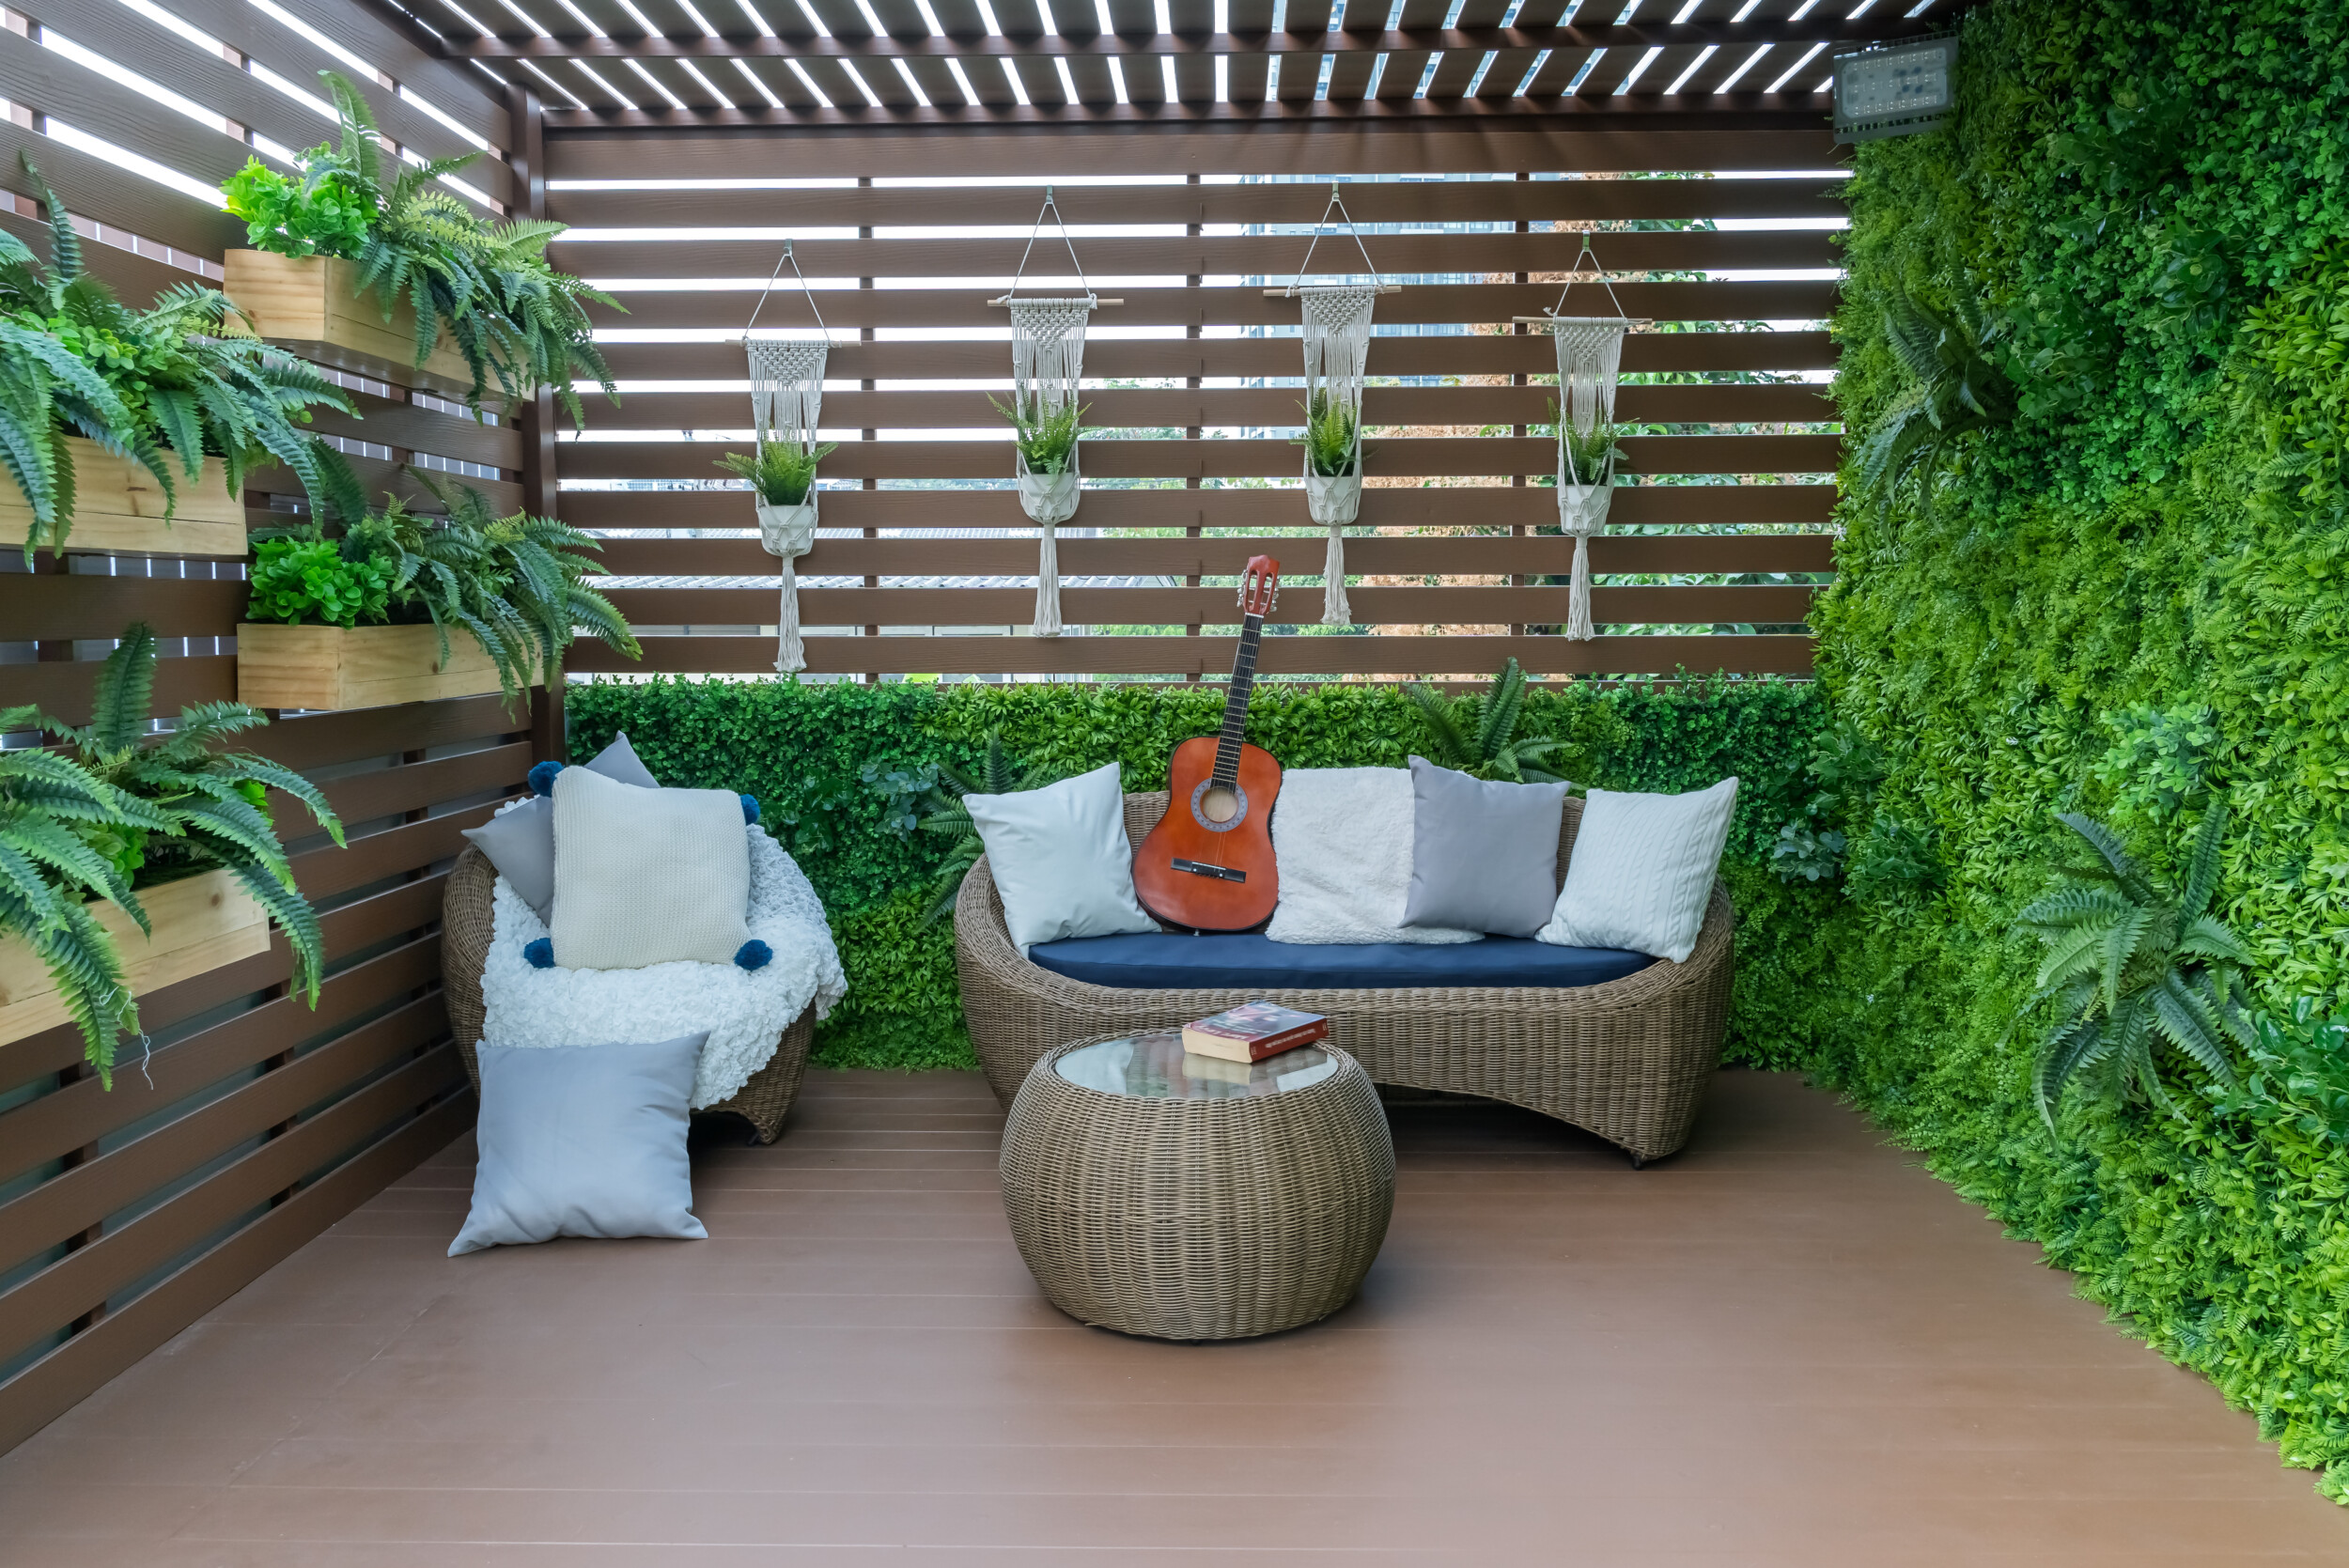 outdoo wooden deck living wall